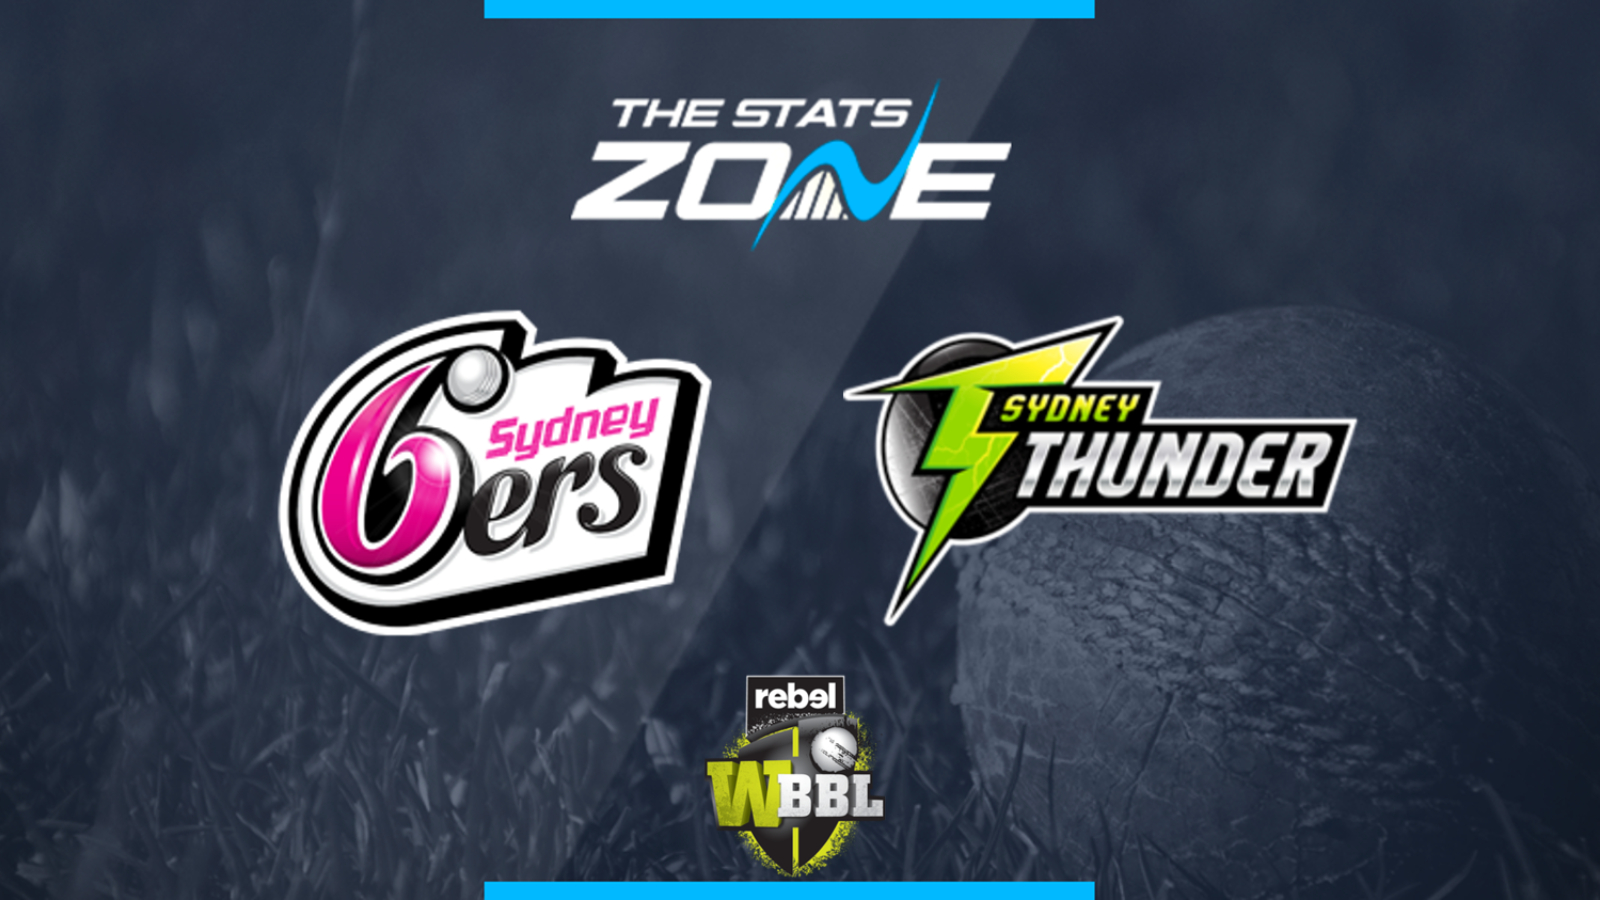 2019 Women's Big Bash League – Sydney Sixers Women vs Sydney Thunder Women Preview & Prediction